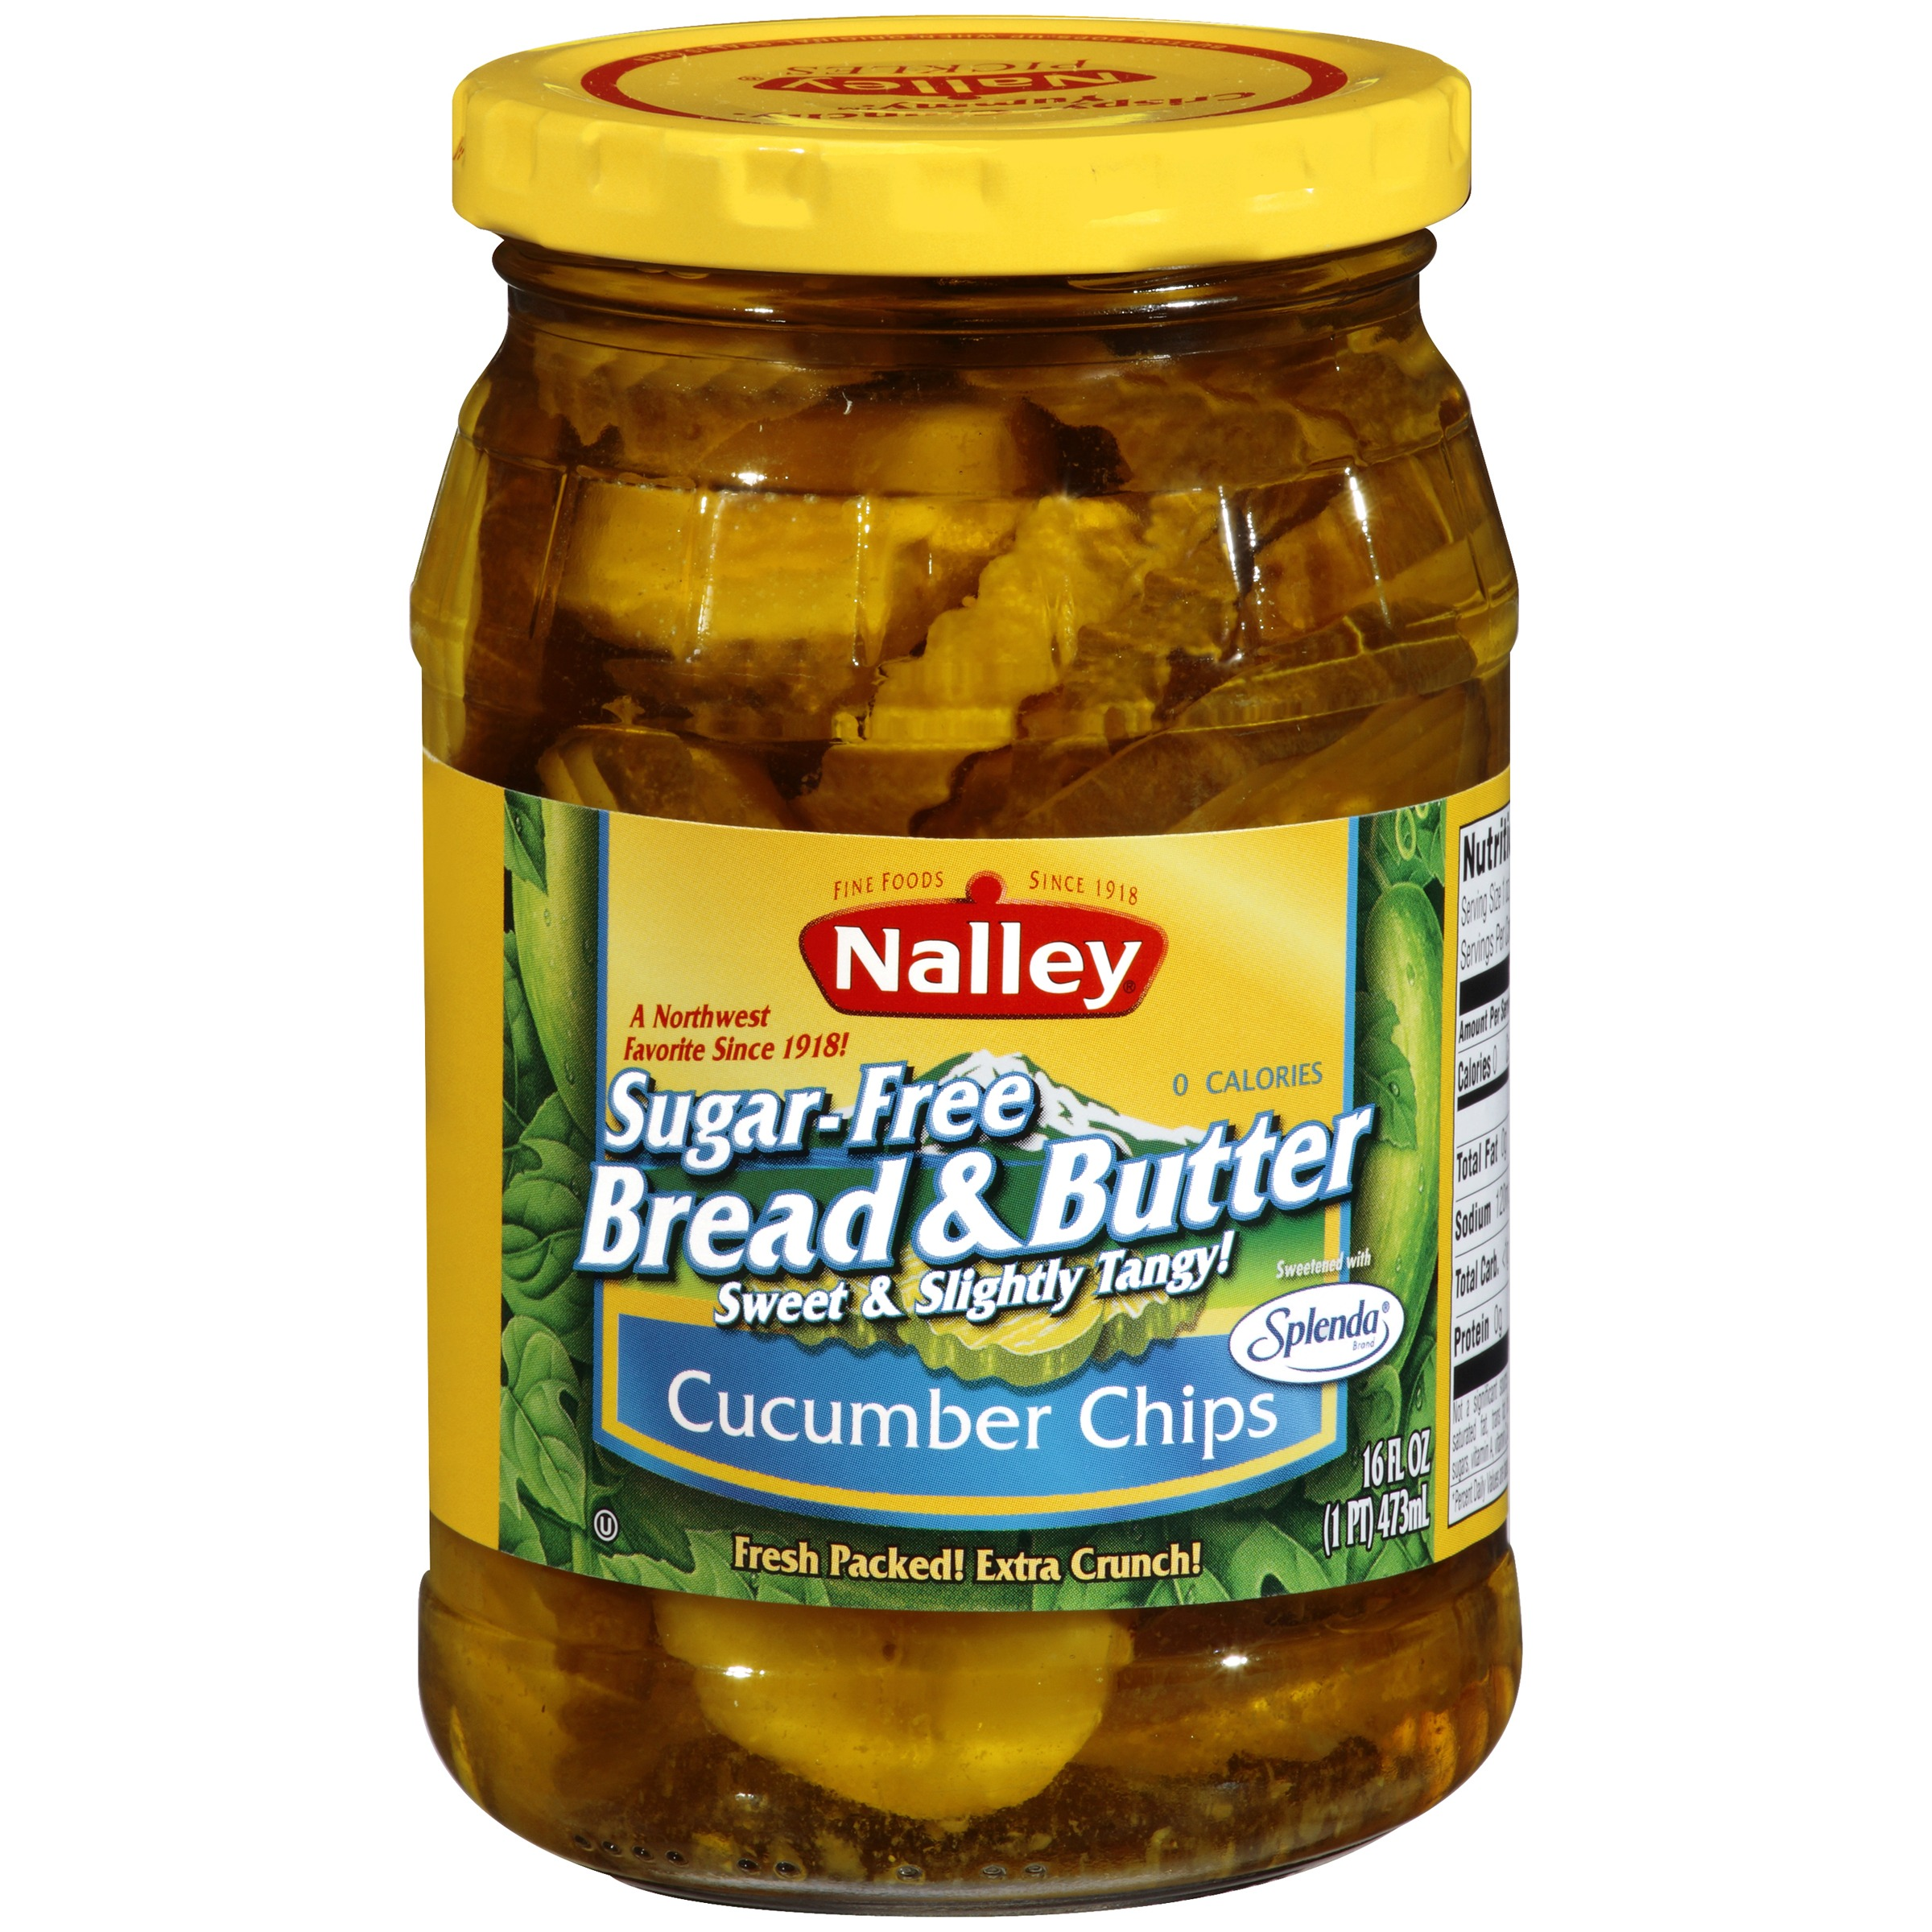 Nalley Sweet & Slightly Tangy Sugar-Free Bread & Butter Cucumber Chips, 16 fl oz